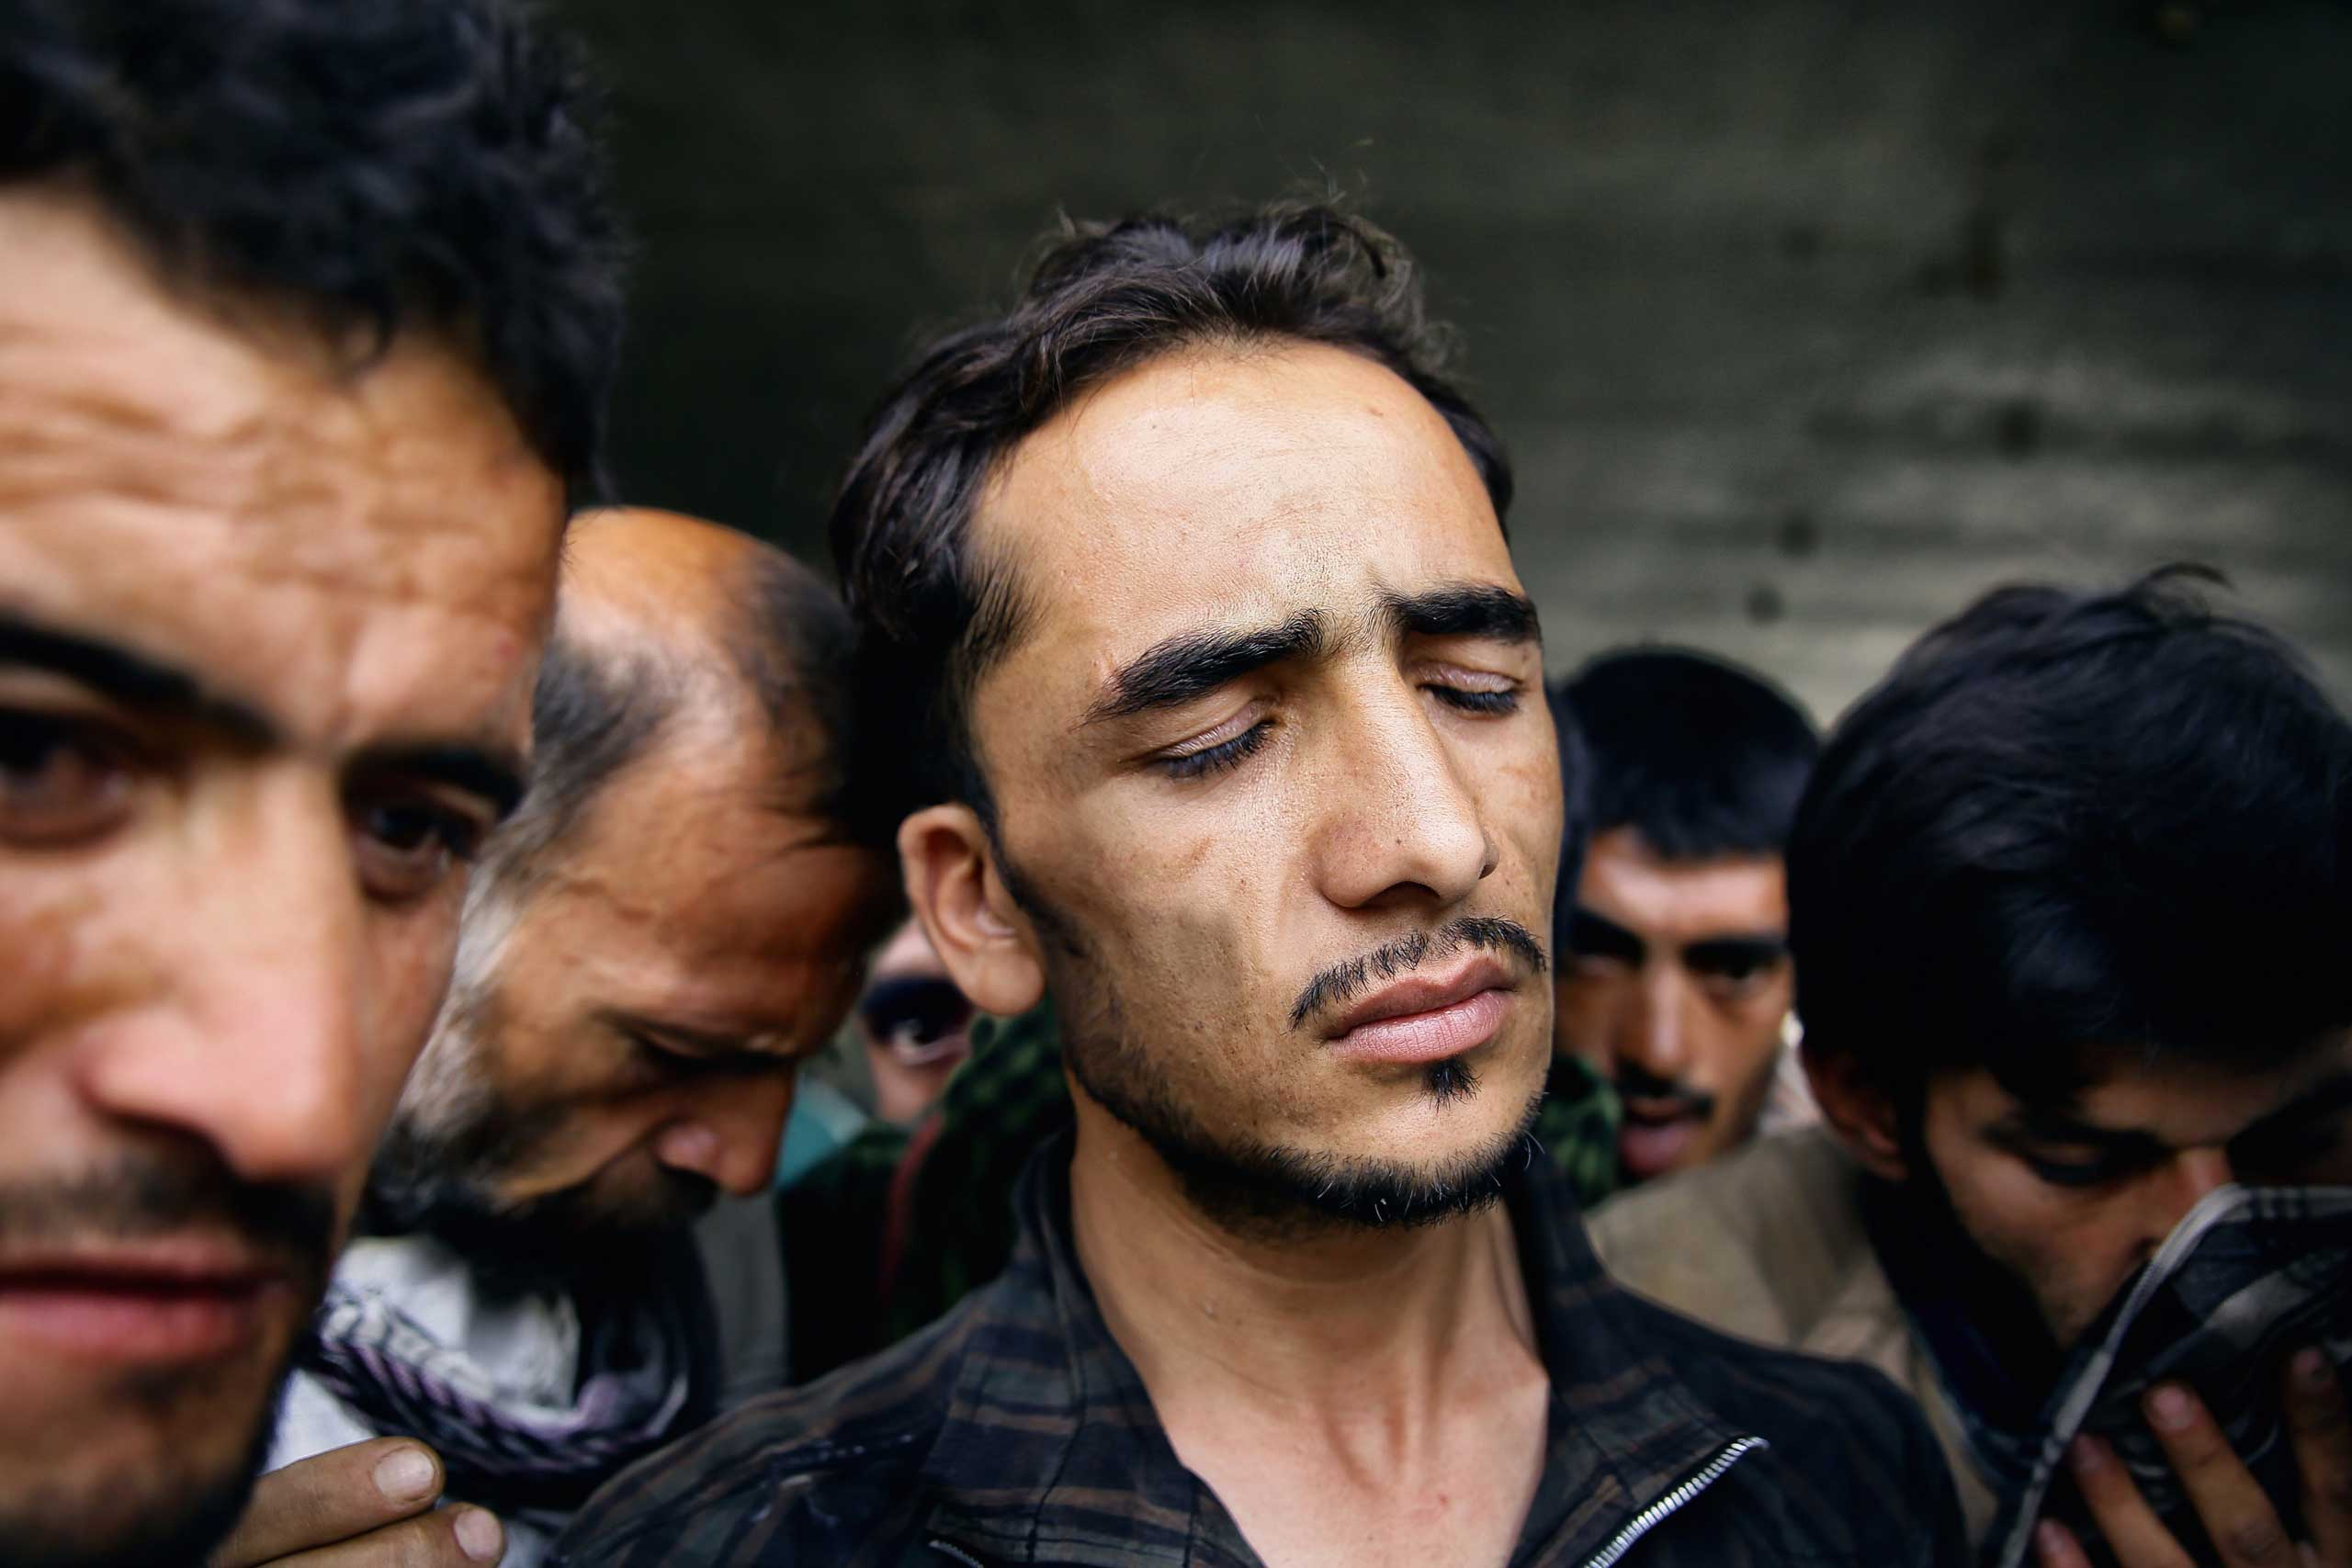 Abdul Rahim Qadl grimaces in a haze after smoking a hit of opium resin under Pul-e Sukhta bridge, Kabul on Aug. 1, 2014.